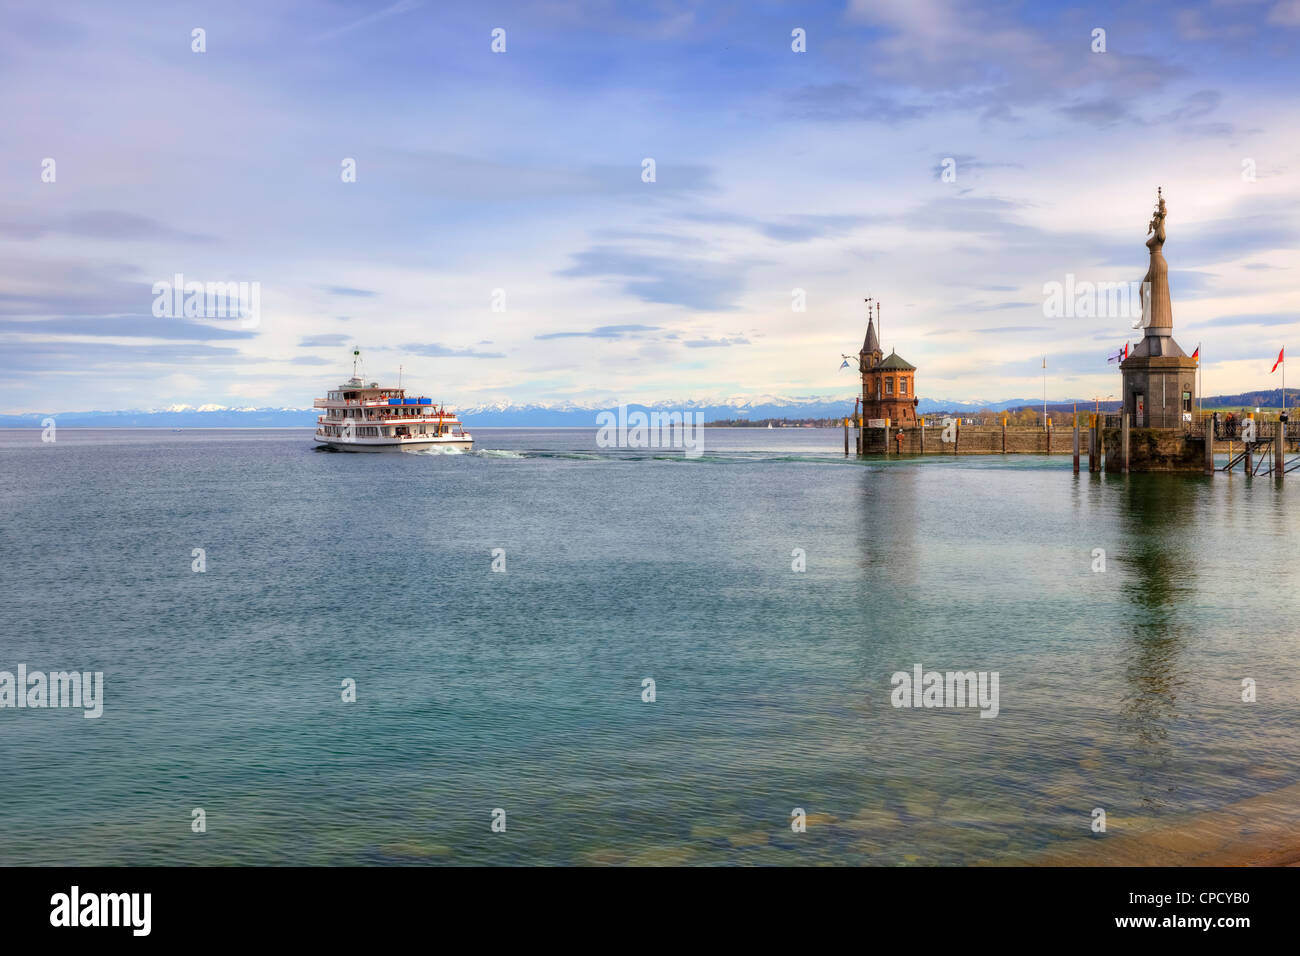 Evening, Harbour, Constance, Baden-Wurttemberg, Germany Stock Photo